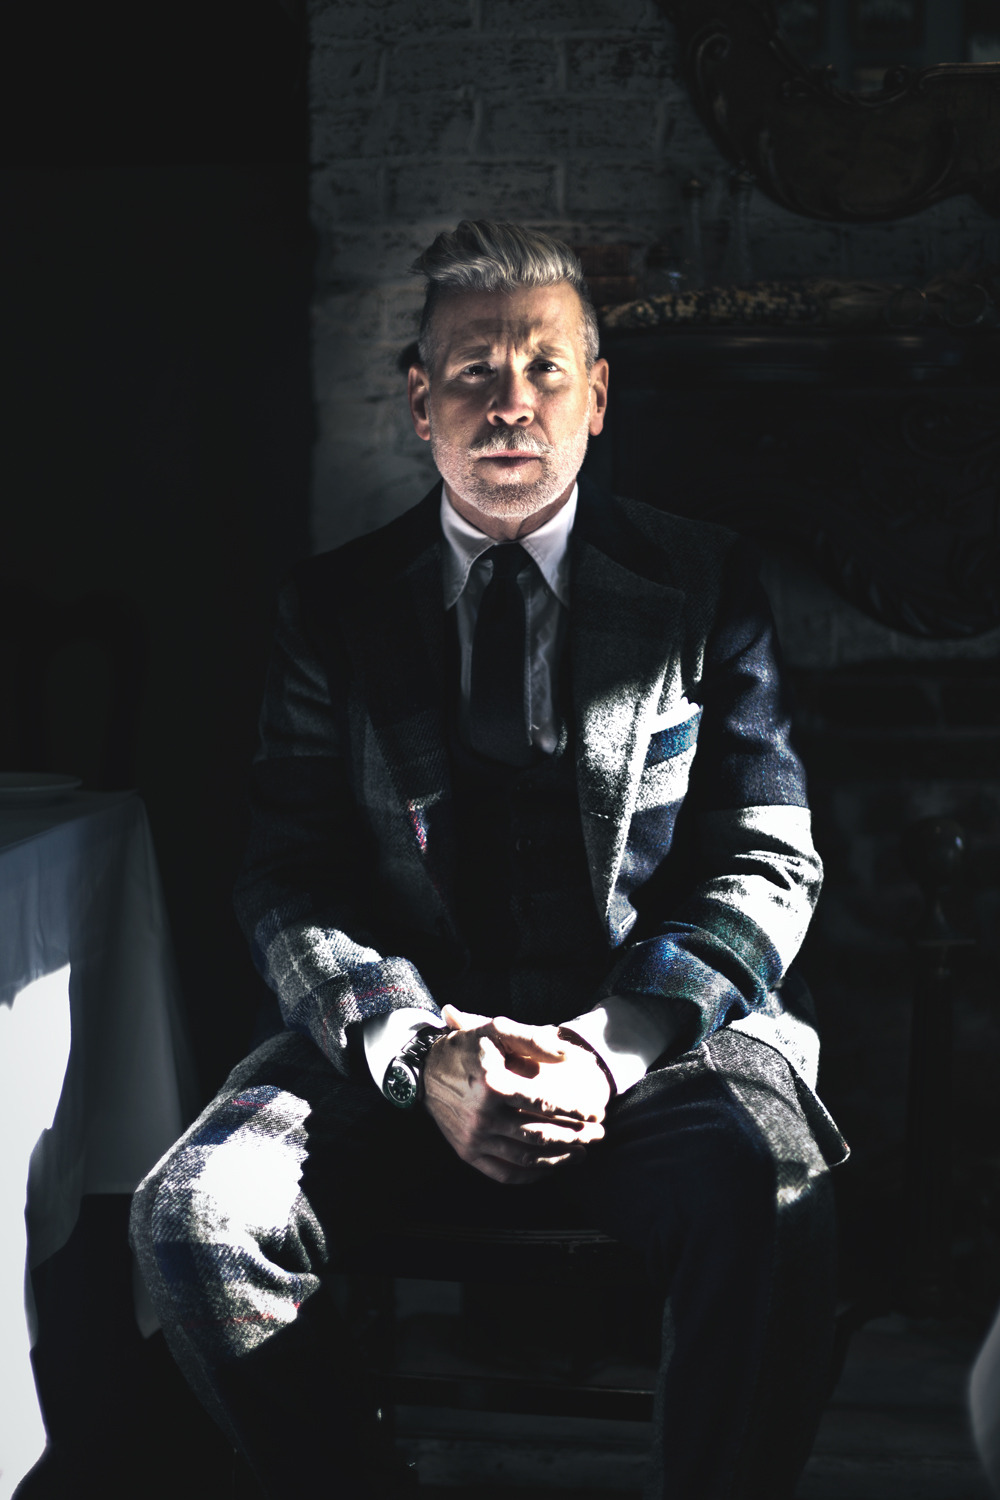 "The Creators of NYC: Menswear Icon Nick Wooster This story was coproduced in partnership with The Daily Beast. Josh Wool spent a decade as an executive chef, opening restaurants across the south. But all that changed in 2010, when the carpal tunnel in his hands meant he could no longer work. To keep from going stir crazy, he picked up a camera and found his next calling. Two years, thousands of portraits, and a move to New York later, Wool is documenting the people who inspire him on a daily basis. Welcome to Creators of NYC. Nickelson Wooster Nickelson Wooster is a veritable master of all things sartorial. He's been called the ""alpha male of American street style"" by GQ and has redefined the norm for modern masculine fashion through his work at Bergdorf Goodman, Neiman Marcus, Calvin Klein — and now JC Penney. His personal brand, a kind of of rugged style meets elegance, has shaped the way men dress all over the world. We caught up with the Kansas native at Bobo, one of his favorite West Village restaurants. Can you describe what inspires your style? Getting dressed for me is like a window to my soul. I grew up in the 60s and 70s when men were required to wear a suit, shirt, and tie every day to be taken seriously. I was at the tail end of that generation, and it had a significant impact on me. I always favor being overdressed –- if I'm not wearing a suit, I'm wearing a jacket. What does fashion say about a person? To me, how you dress is a way to show you care. I think the way you dress is a direct reflection out of what you will get out of your day; you make the effort, people will notice. You'll feel better, and those around you will feel better. Tell us about your new(ish) role at JC Penney. I want to offer customers a way to feel better about themselves. I have found that guys are not only interested in style — they really want to know how they can get it at a good price. If I can offer our customers an upgraded point of view at prices they are comfortable with, I think it is a win for everybody. But people don't exactly think of JC Penney in the same league as Niemen Marcus or Barneys. Is that your job, to remake the brand into something more chic? I'm not proposing three-armed jackets; I'm just proposing taste at an affordable price. Have you ever had a job you hated? Following college graduation, I moved to New York to work for Saatchi & Saatchi. The job itself was not crappy, it was just a really crappy fit because it was all numbers, tons of spreadsheets, and analyzing business — all before computers. Years later, I realize it gave me a good understanding of what drives business; but at the time, I did not want to do it. Now you're all over the computer. Do you think social media has changed the way we consume fashion? Absolutely. Tumblr, the Fancy, Instagram — it has democratized fashion in a new way, giving everyone instant access to what is happening on the runways and the street. I'm really interested to see how the publishing and retail worlds might blend together. What advice can you give the average guy on how to look sharp on a budget? Fit is so important … it's about details, not about spending a fortune. What's your favorite thing about living in New York? The great thing about New York is neighborhoods are so close to one another, yet have their own distinctive feel. The West Village has been my home off and on for 30 years, and I love how it retains the feel of local shops — my tailor, barber, and shoemaker are all within 100 feet of my front door. — Photos and interview by Josh Wool"